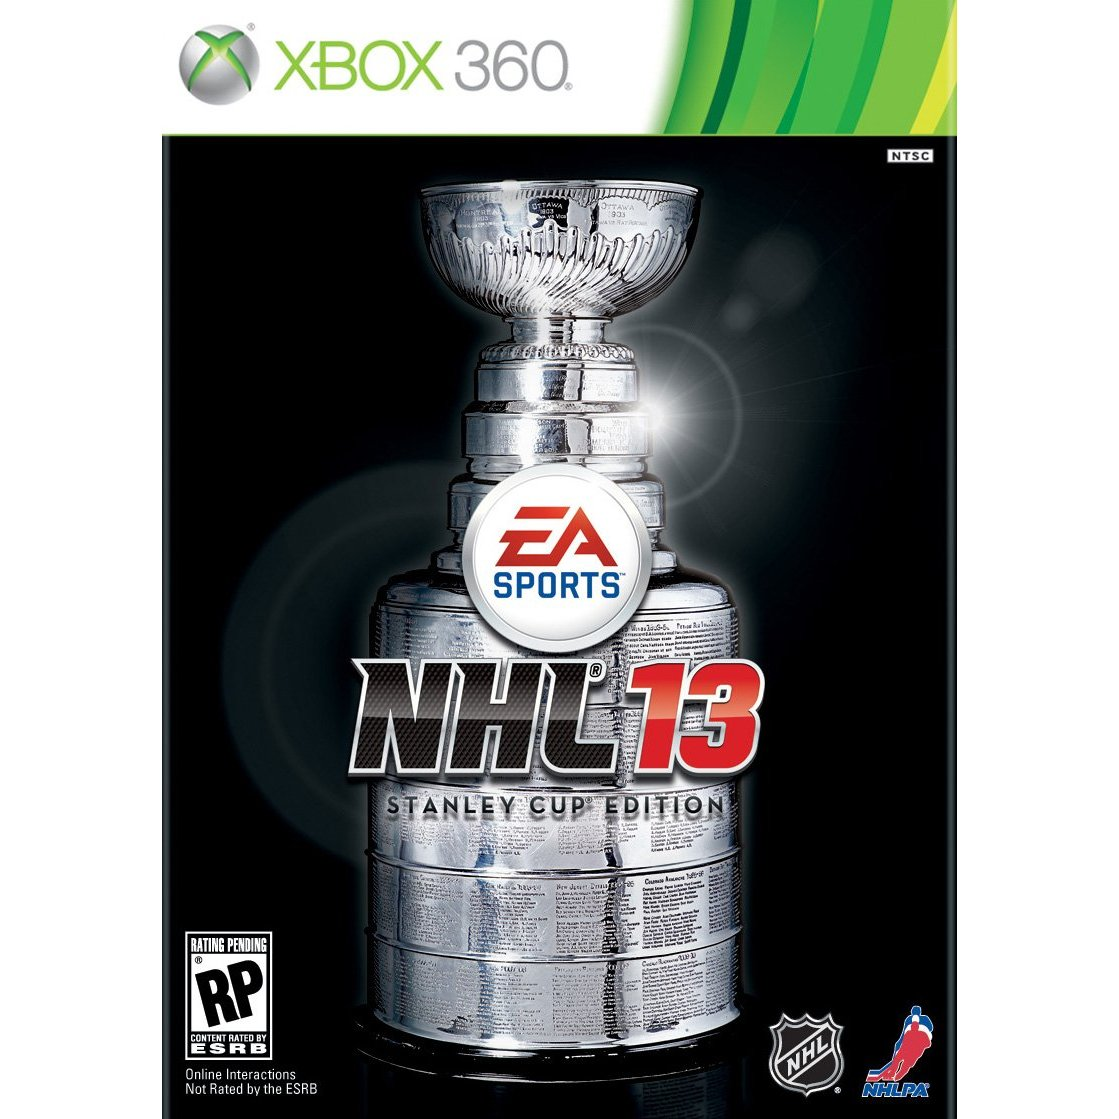 Nhl 13 stanley cup edition steelbook (xbox360) unboxing youtube.